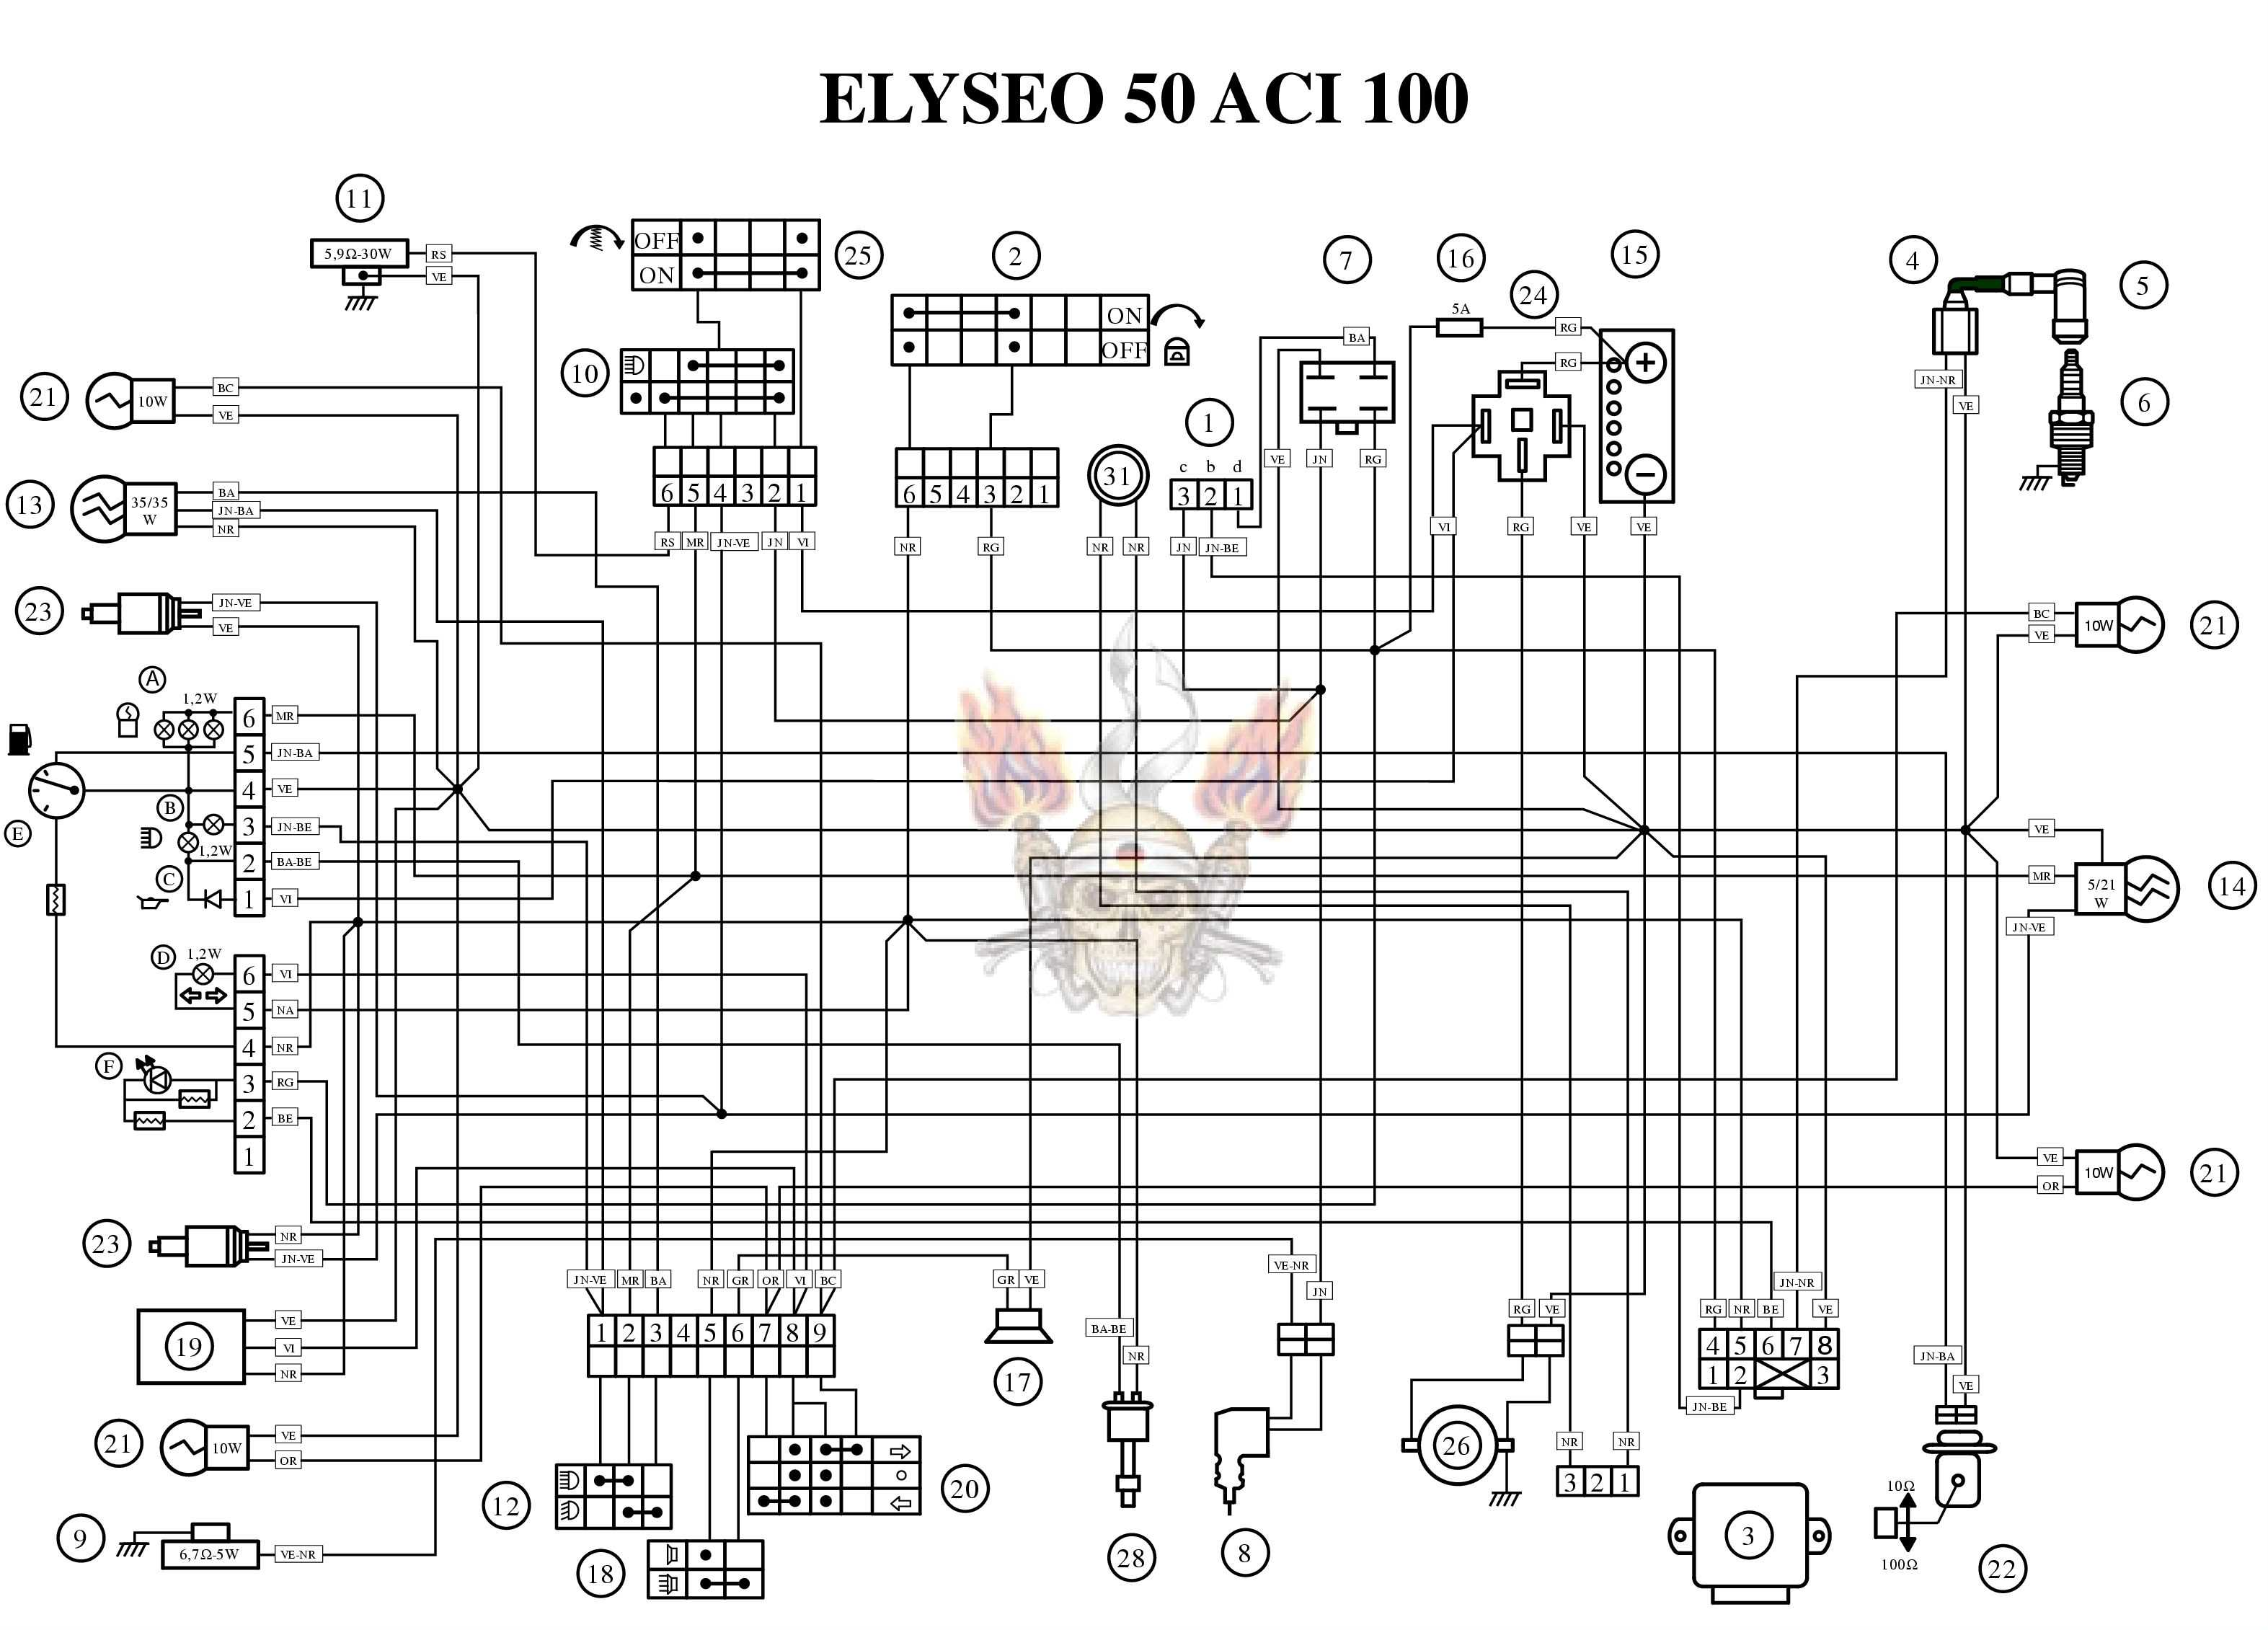 Wiring Diagram Peugeot ELYSEO 50 ACI 100 peugeot 307 wiring diagram efcaviation com peugeot 307 abs wiring diagram at gsmx.co